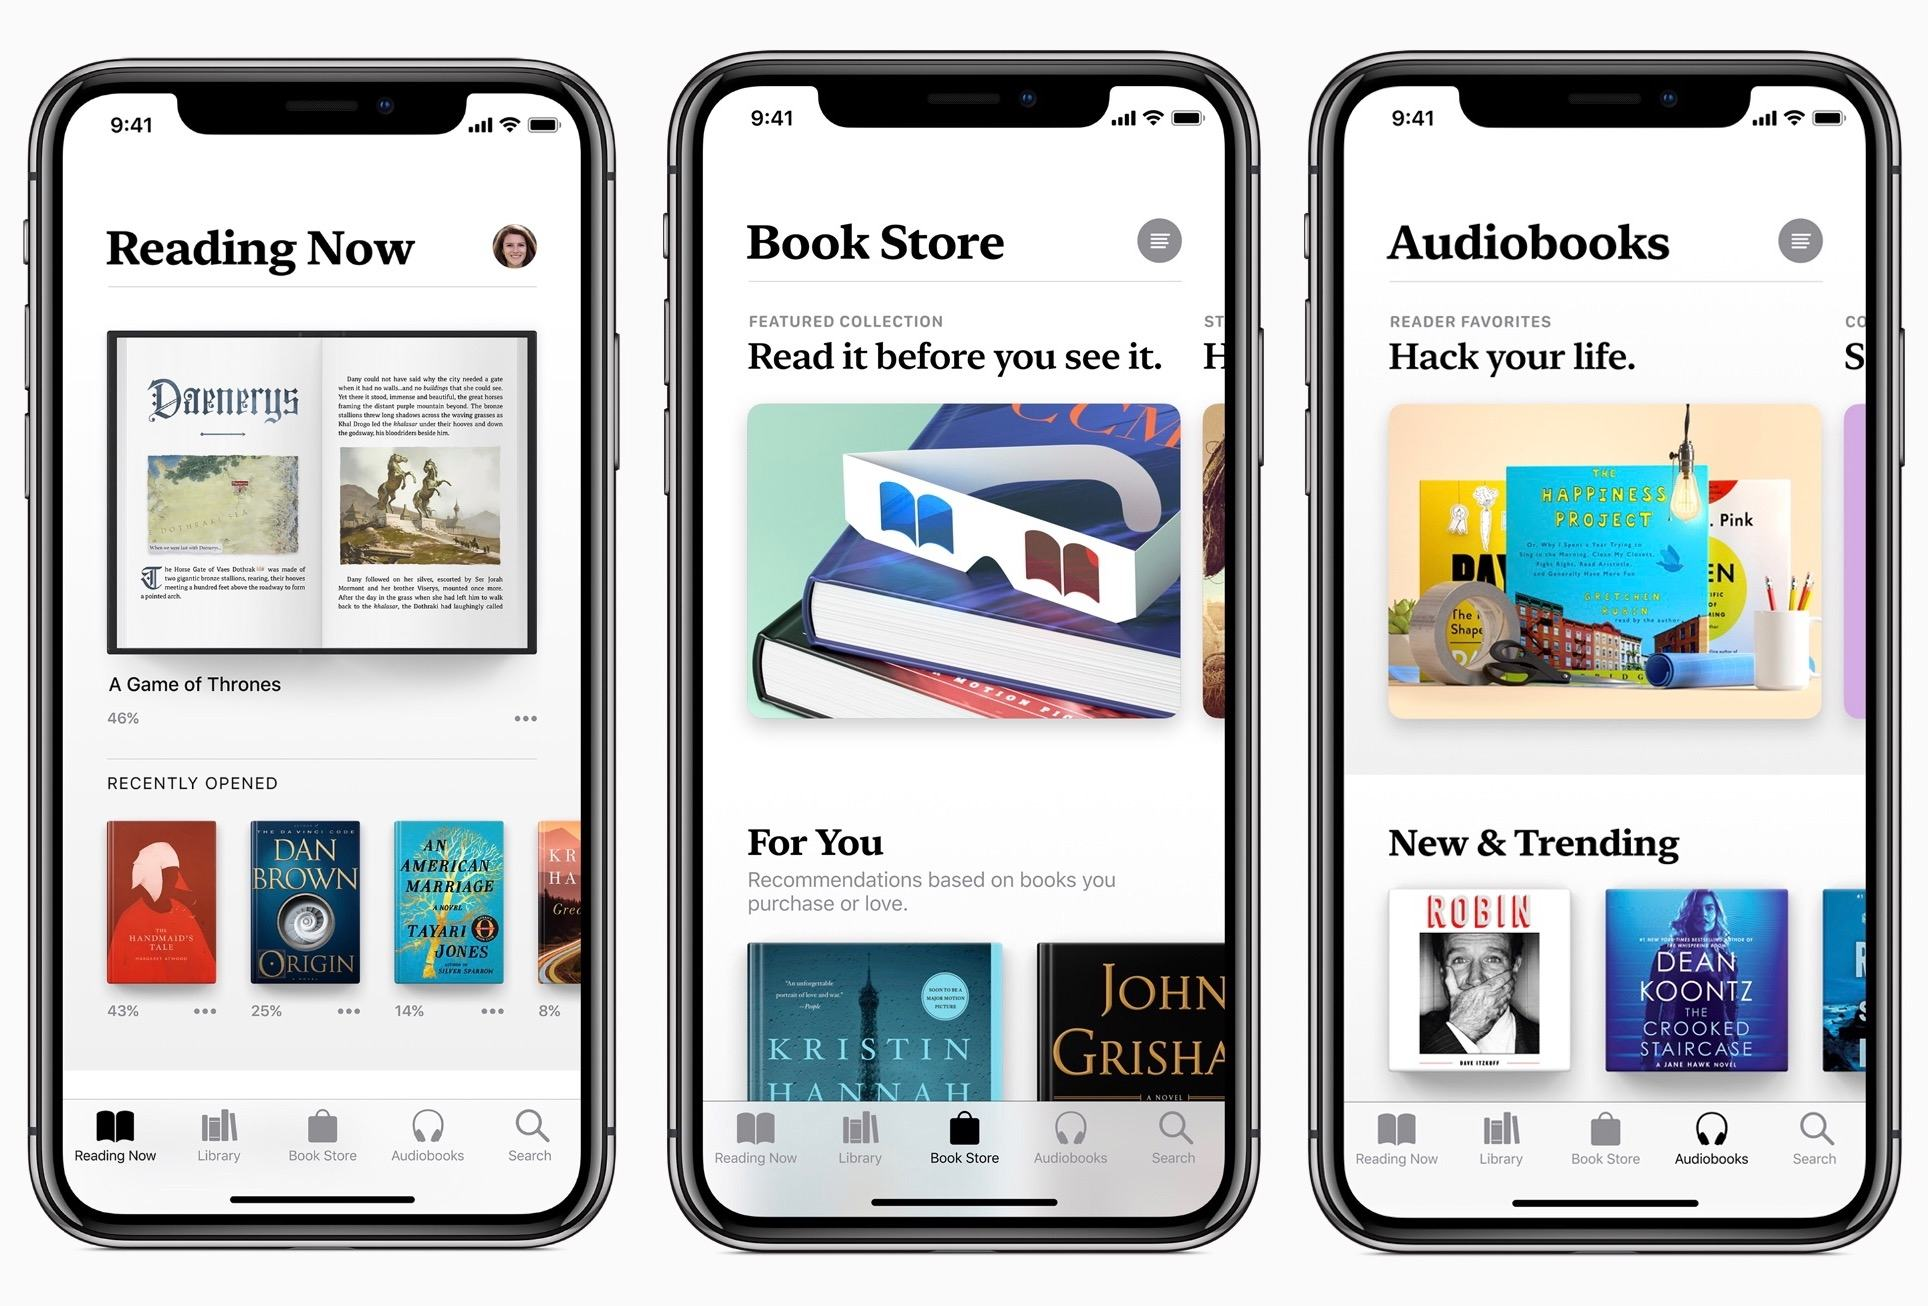 Apple Books gets previewed ahead of iOS 12 release, to replace iBooks